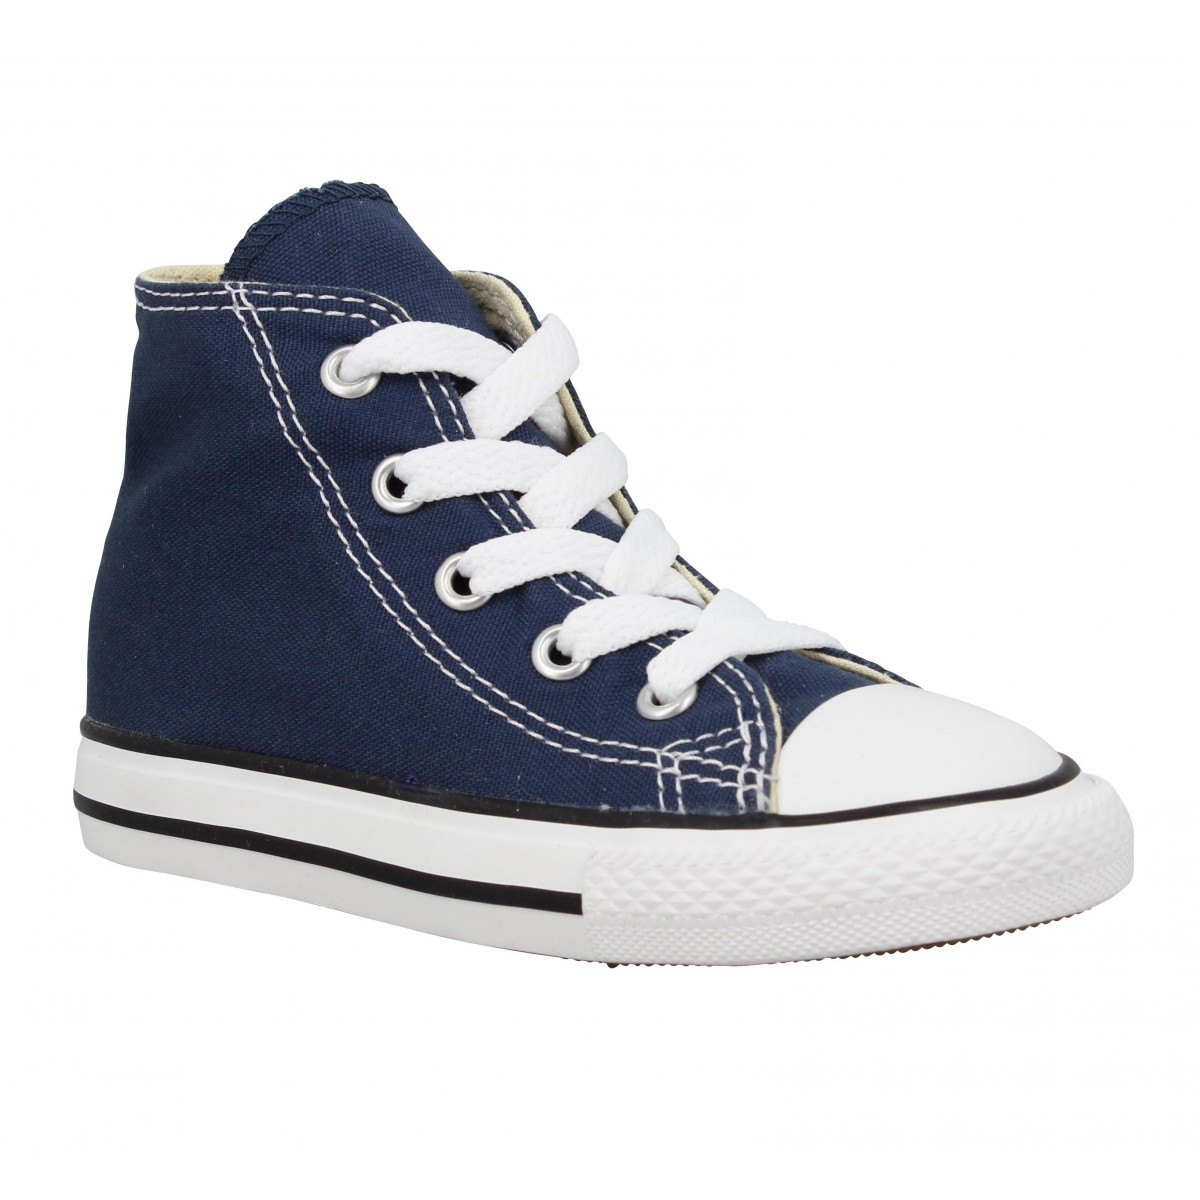 Baskets CONVERSE Chuck Taylor All Star Hi toile Enfant Marine